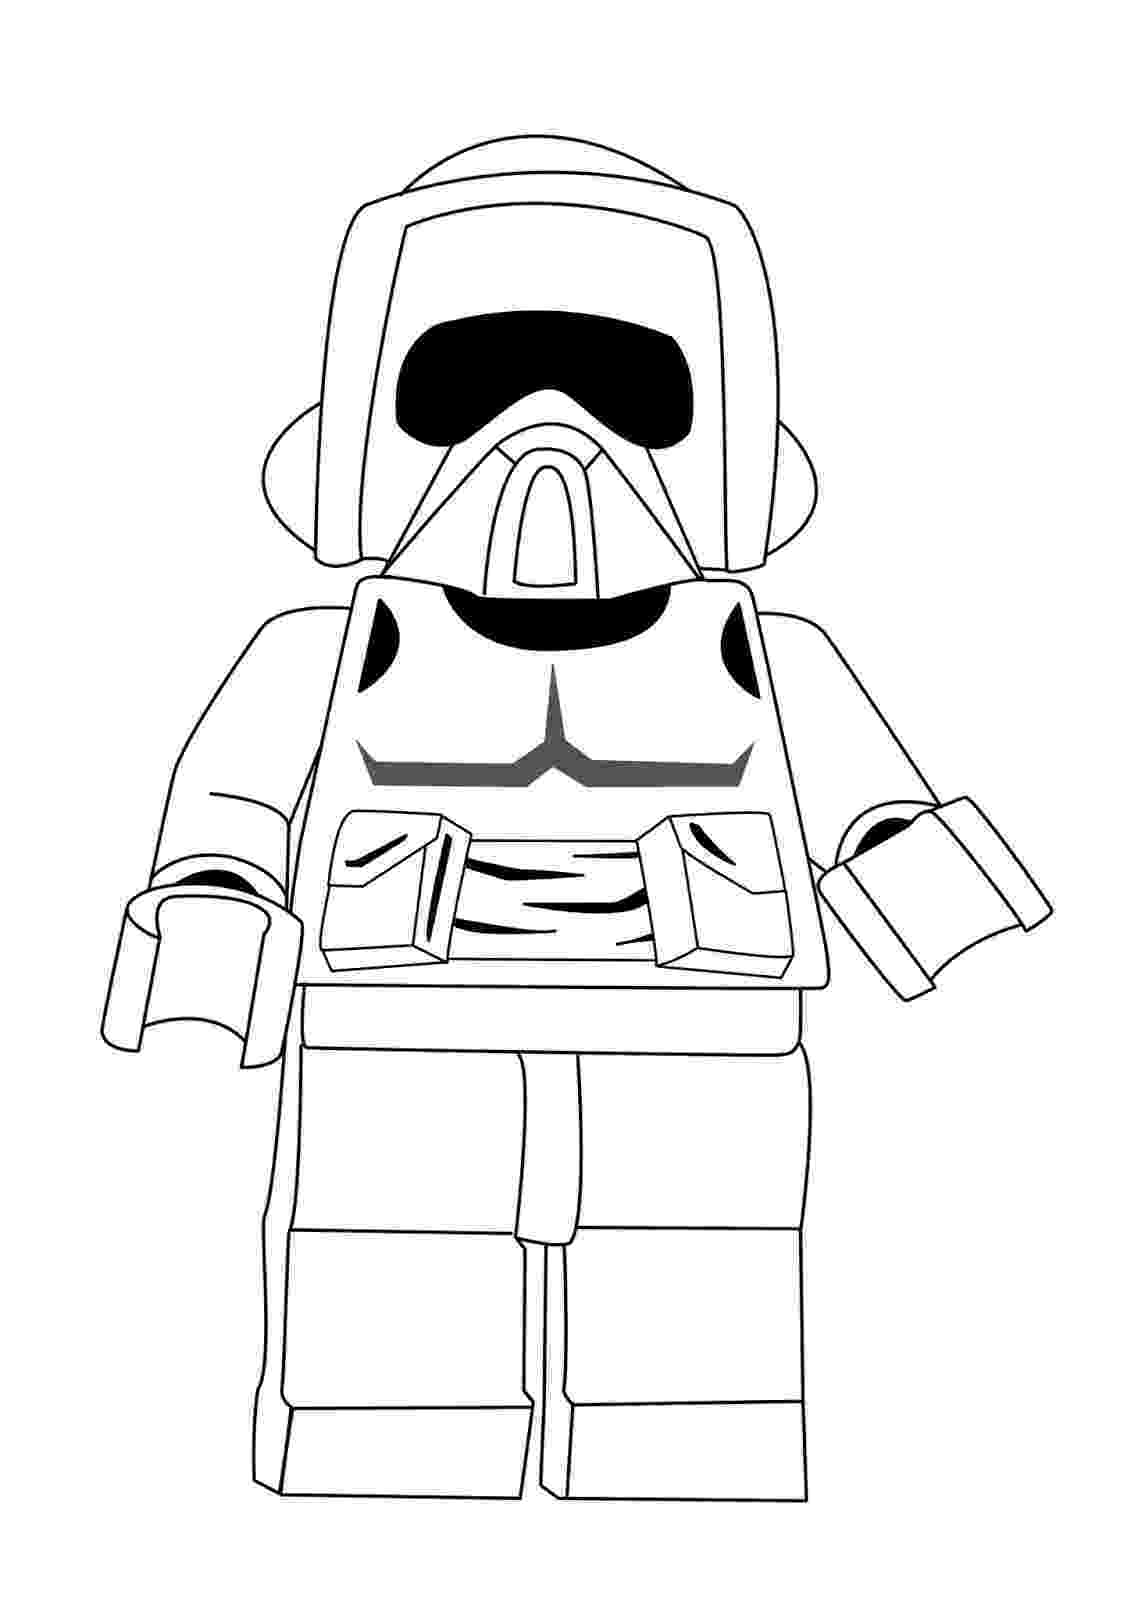 lego star wars coloring pages printable star wars free printable coloring pages for adults kids pages printable wars lego coloring star